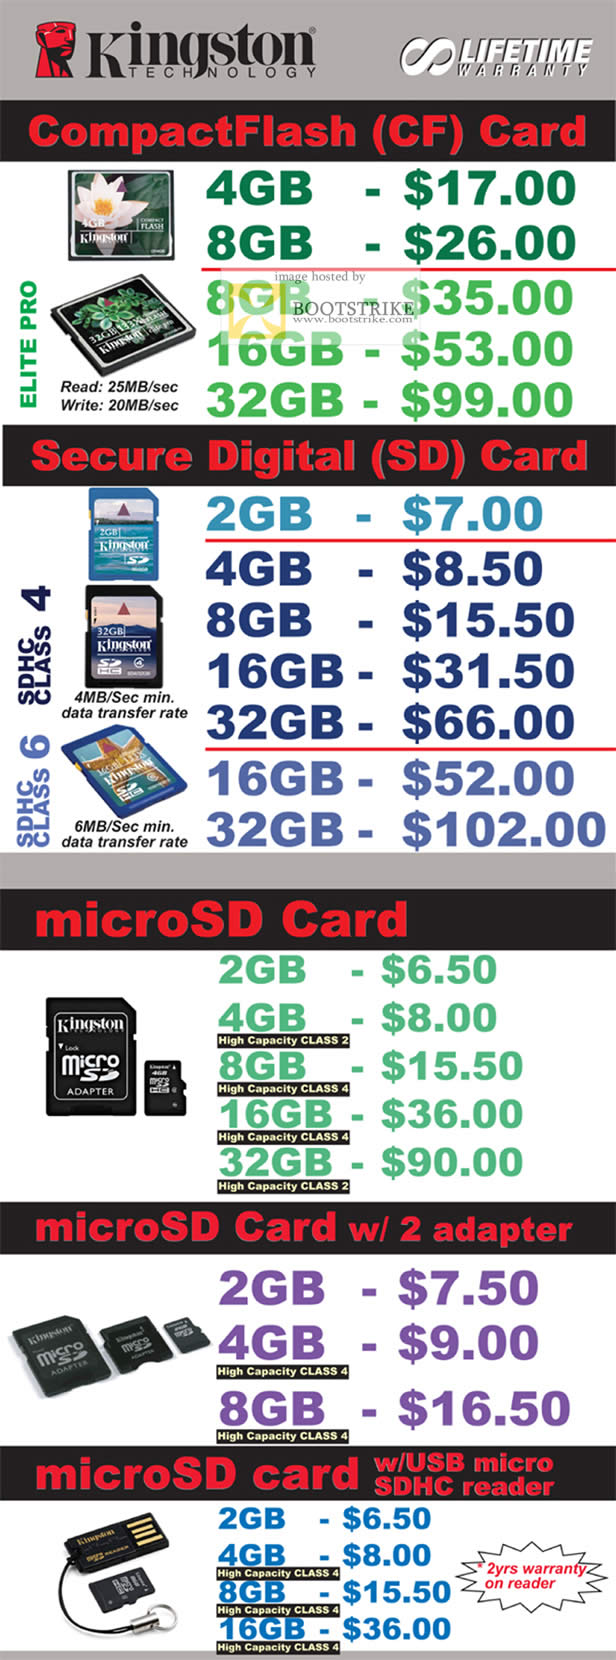 IT Show 2011 price list image brochure of Convergent Flash Memory CompactFlash CF Secure Digital SD MicroSD Adapter Card SDHC Reader